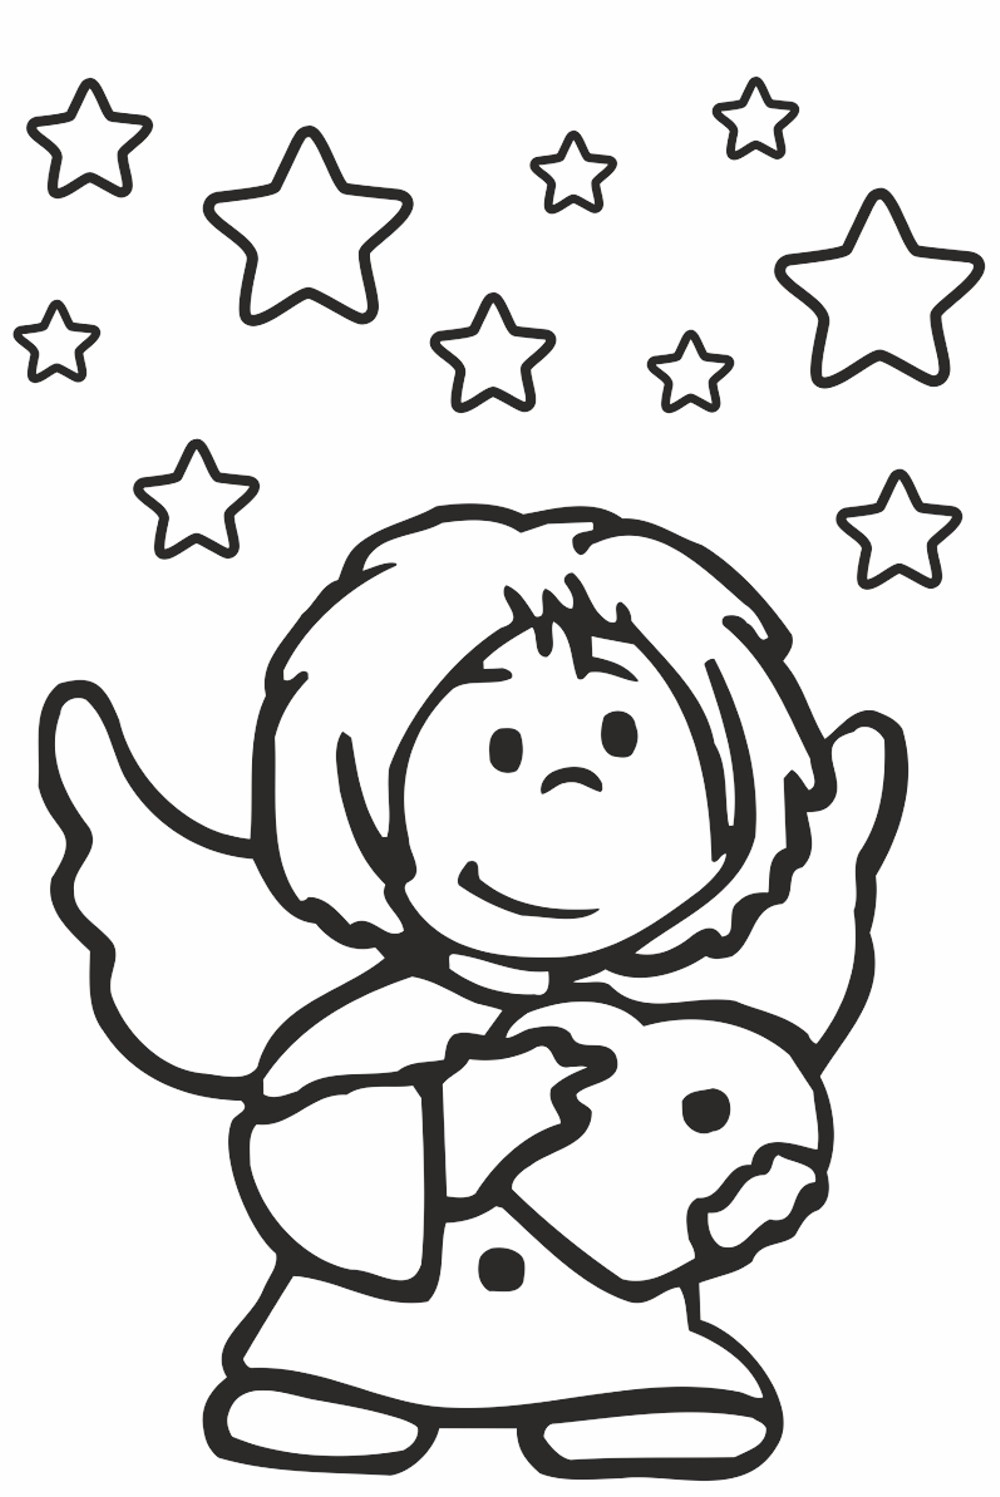 Sticker guardian angel and stars  300 x 200 mm